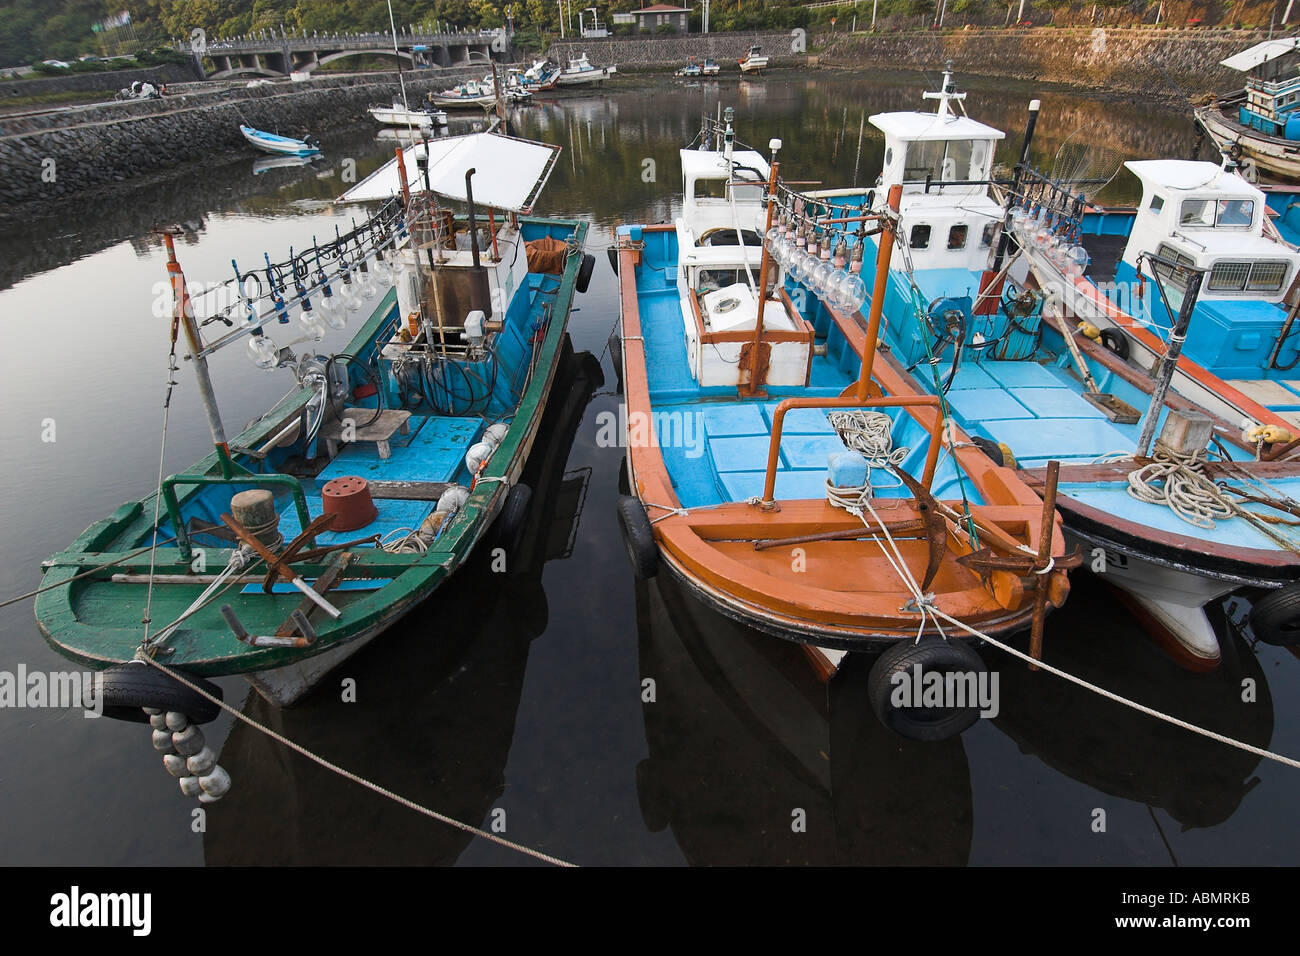 Fishing boats equiped with powerful lights to attract for Fishing lights for boats